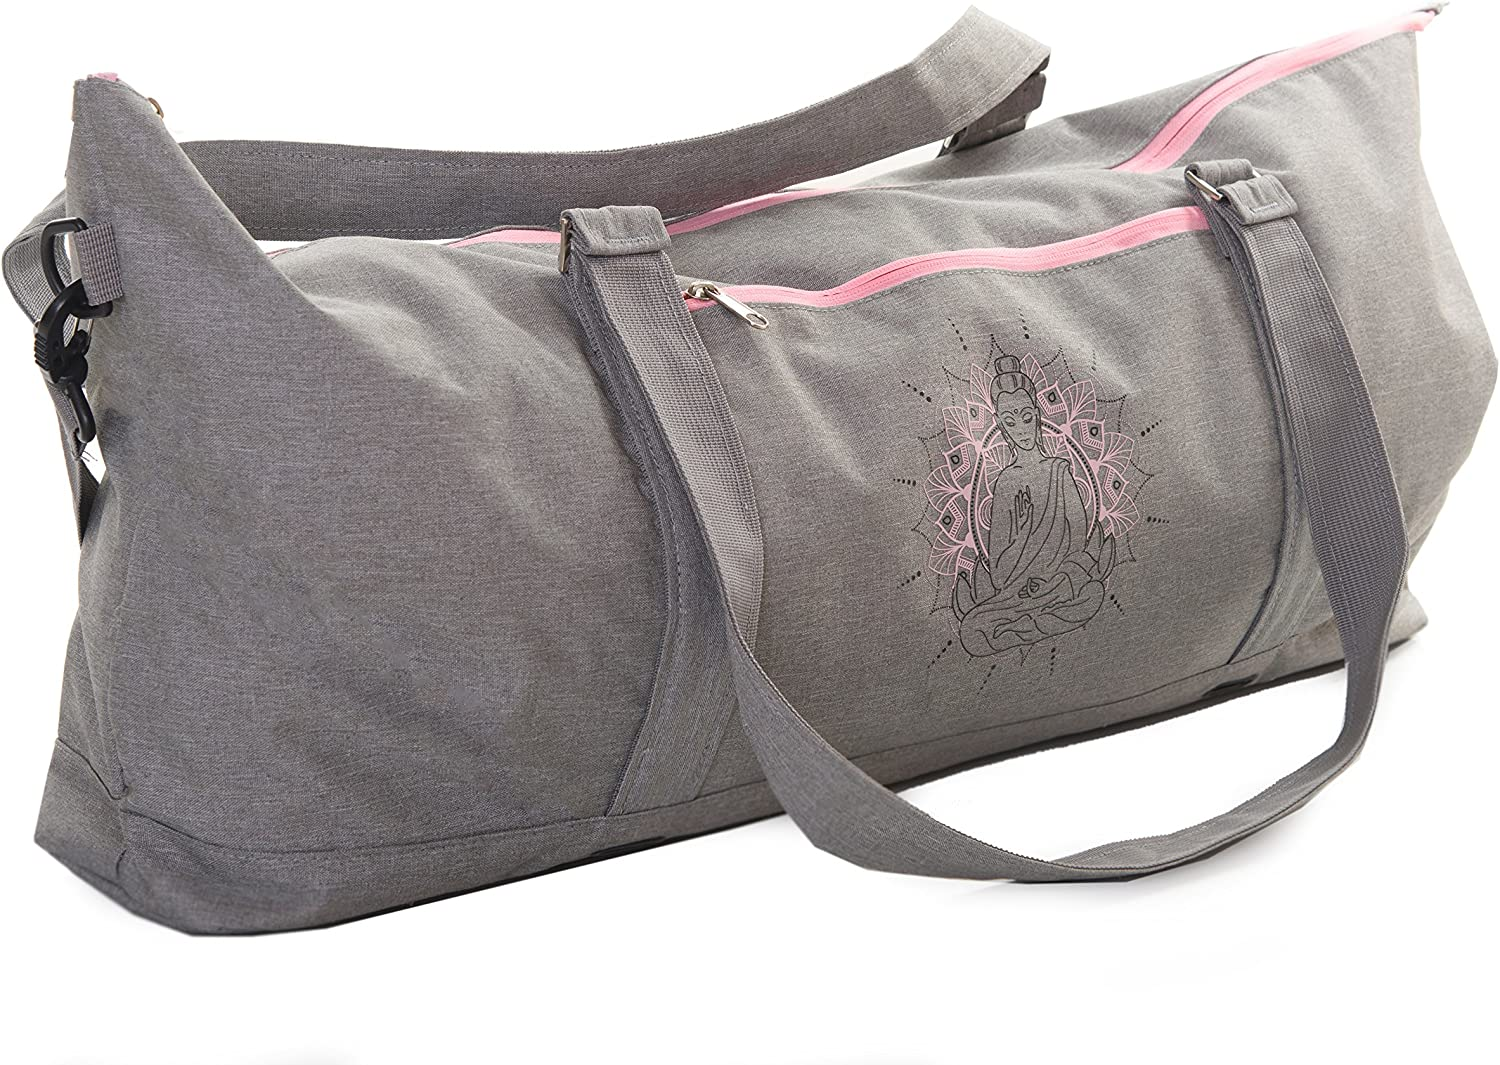 JamPa Yoga Mat Carrier   Yoga Bag with Full Zipper Closing   Adjustable Strap   Many Compartments   Easy to Carry   Extra Wide Mats Will Not Fit